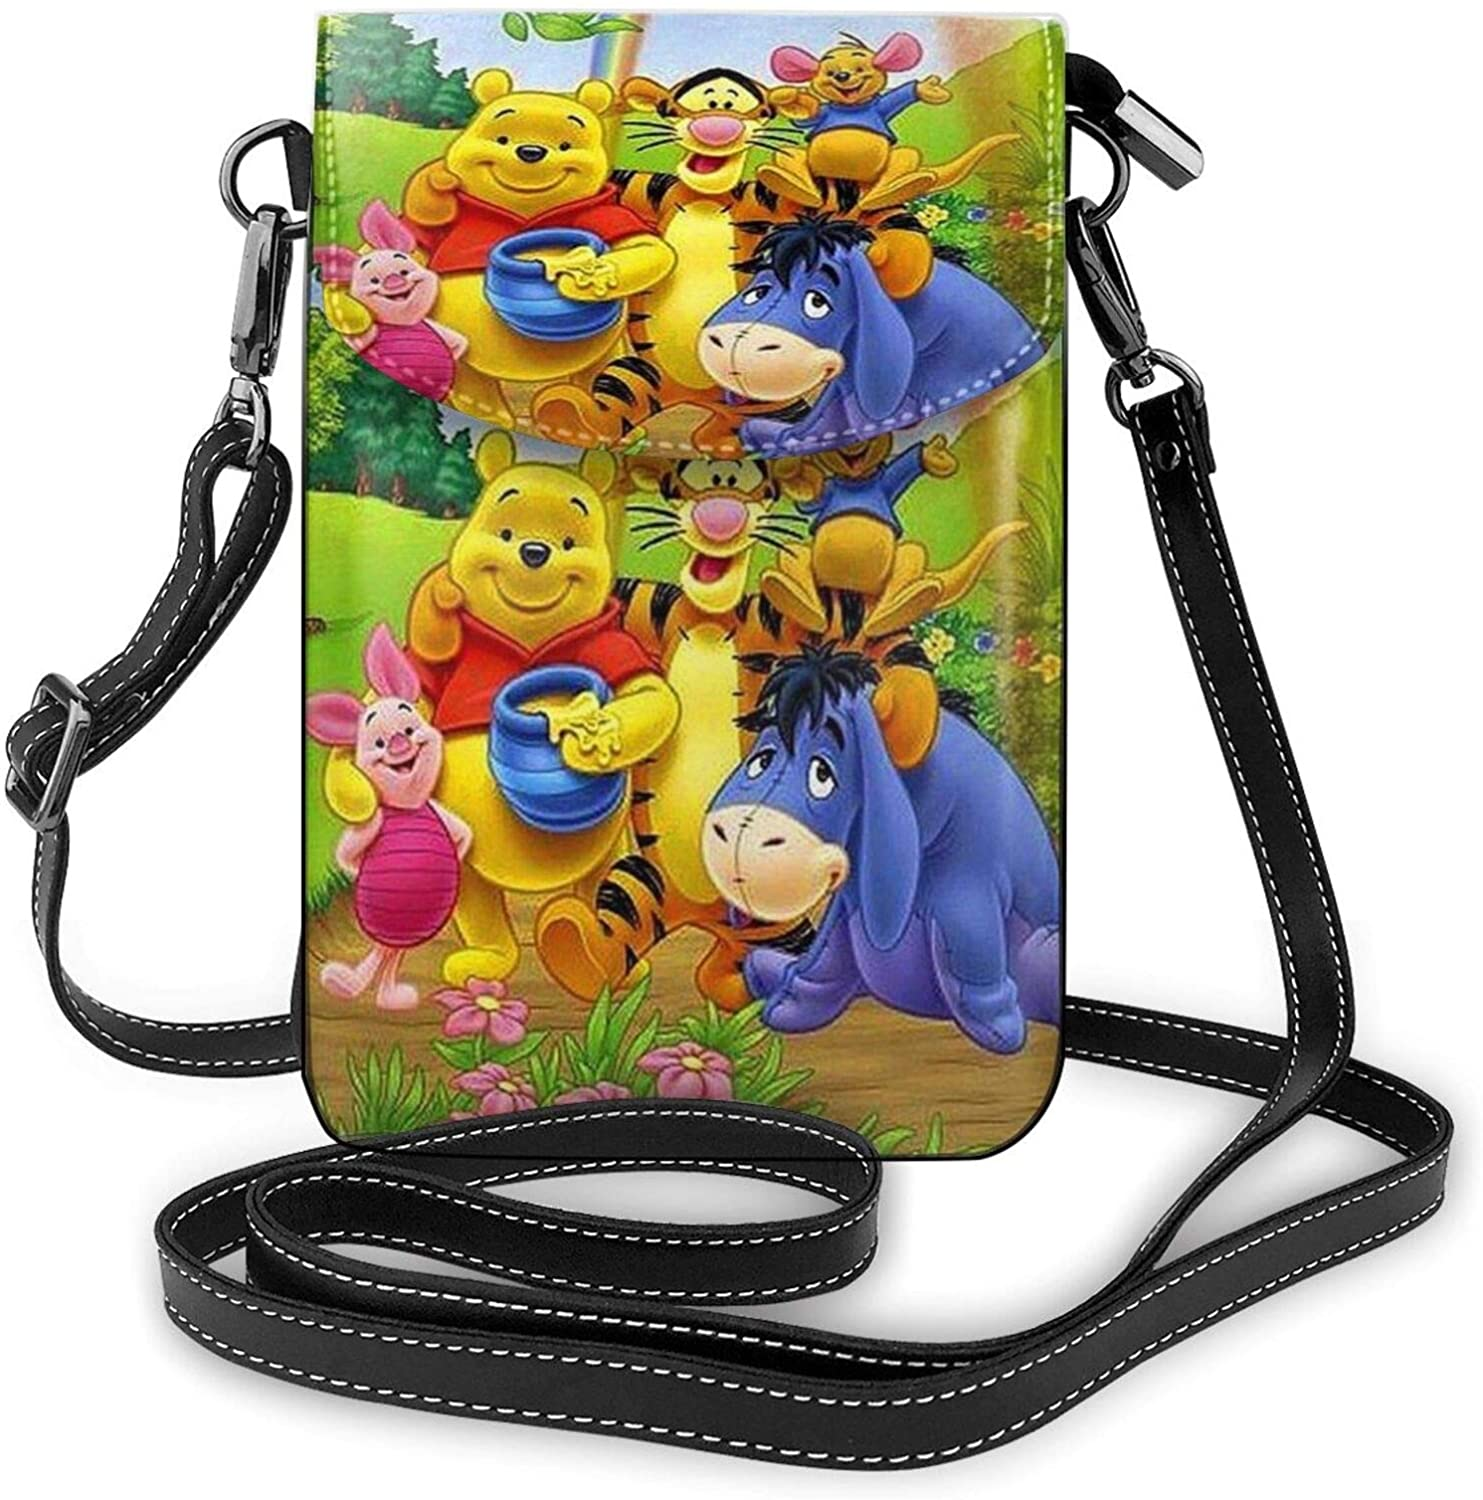 Kuritian Small Crossbody Bags Cell Phone Pursewinnie The Pooh Print With Credit Card Slots